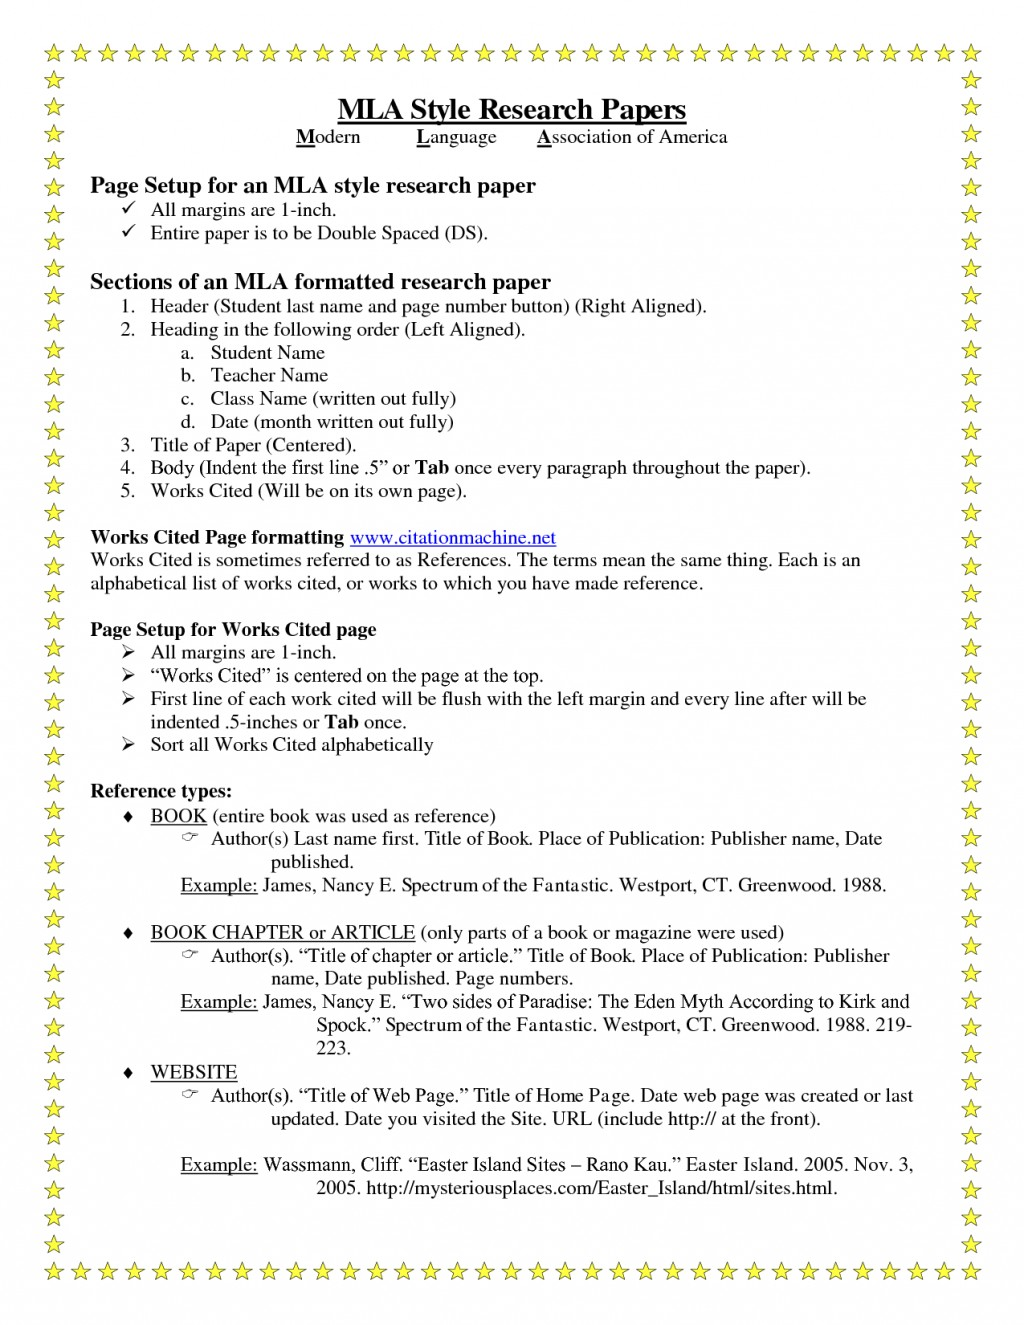 002 Order Ofs In Research Paper Frightening Heading Apa Headings Example Mla Large